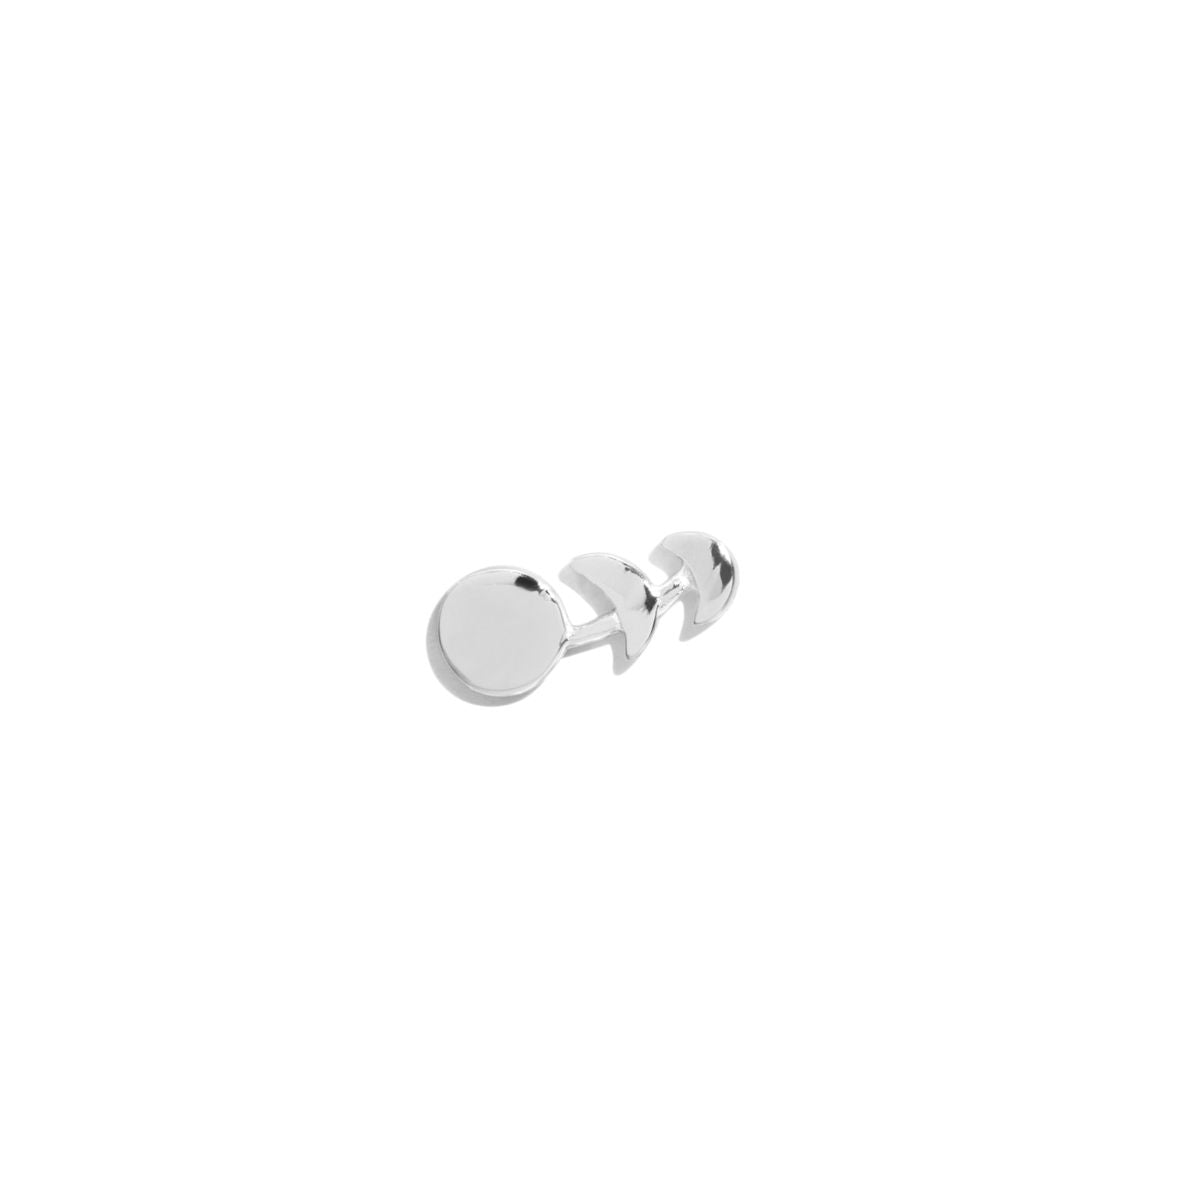 The Single Silver Moon Phase Earring